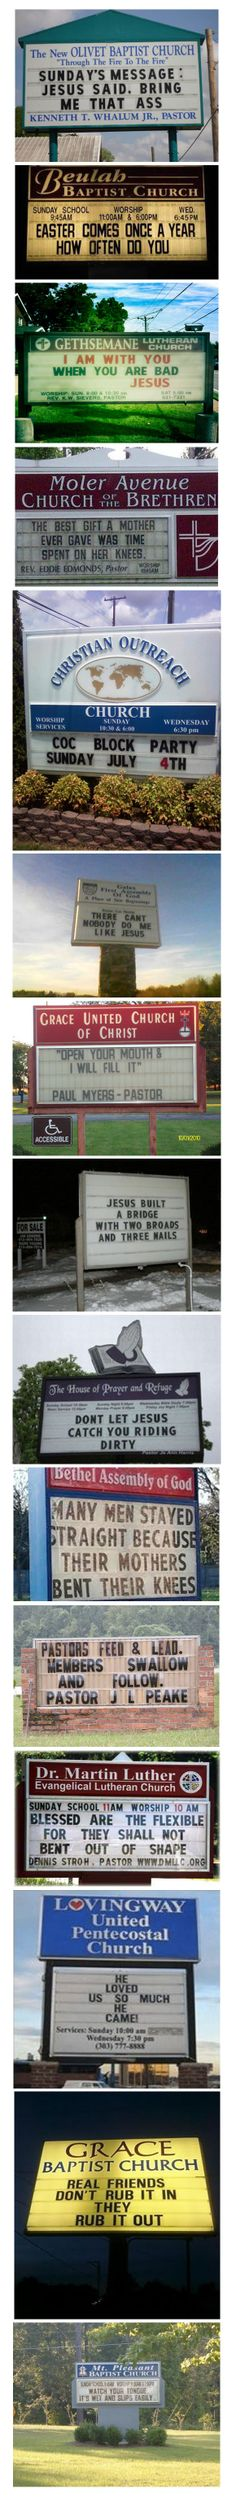 15 Unintentionally Sexual Church Signs http://yeahrightdude.com/15-unintentionally-sexual-church-signs/